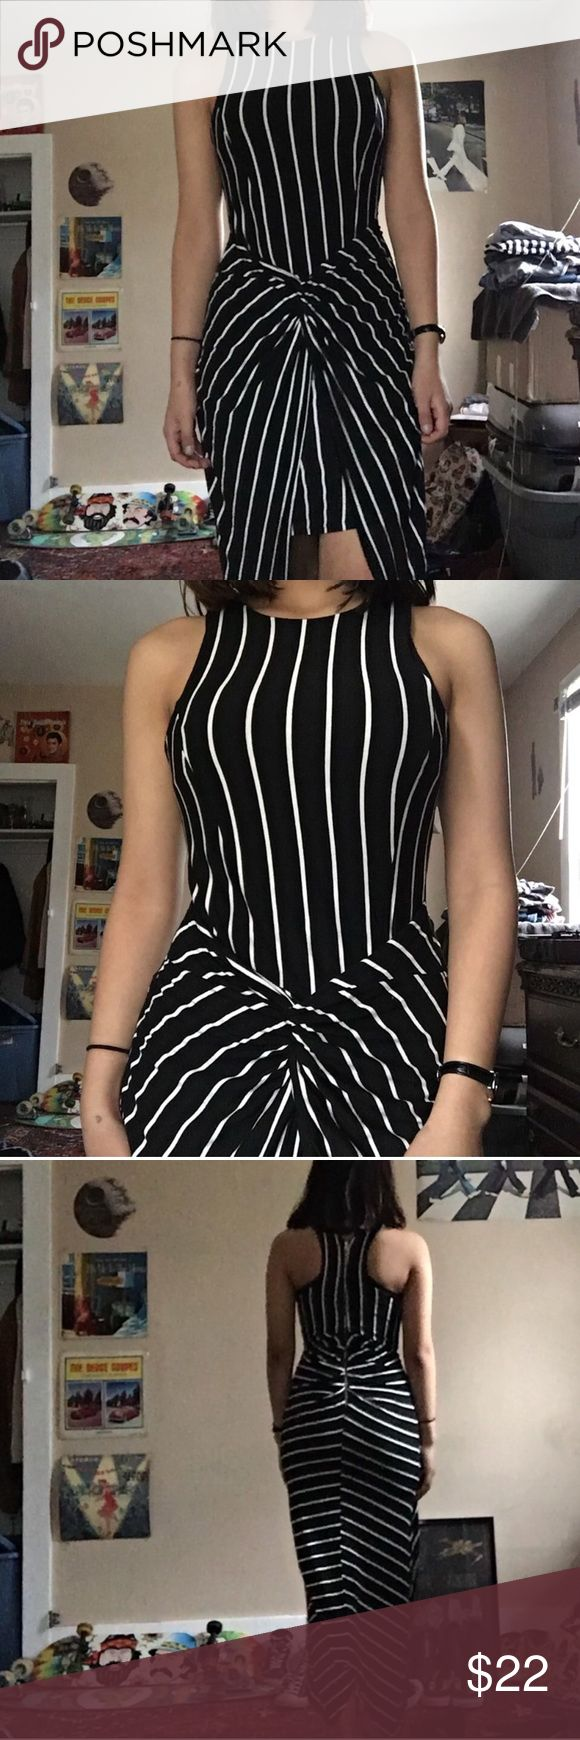 The dress how to see it both ways - Stripped Maxi Dress Black And White Vertically Stripped Dress Both Knee Length And Maxi